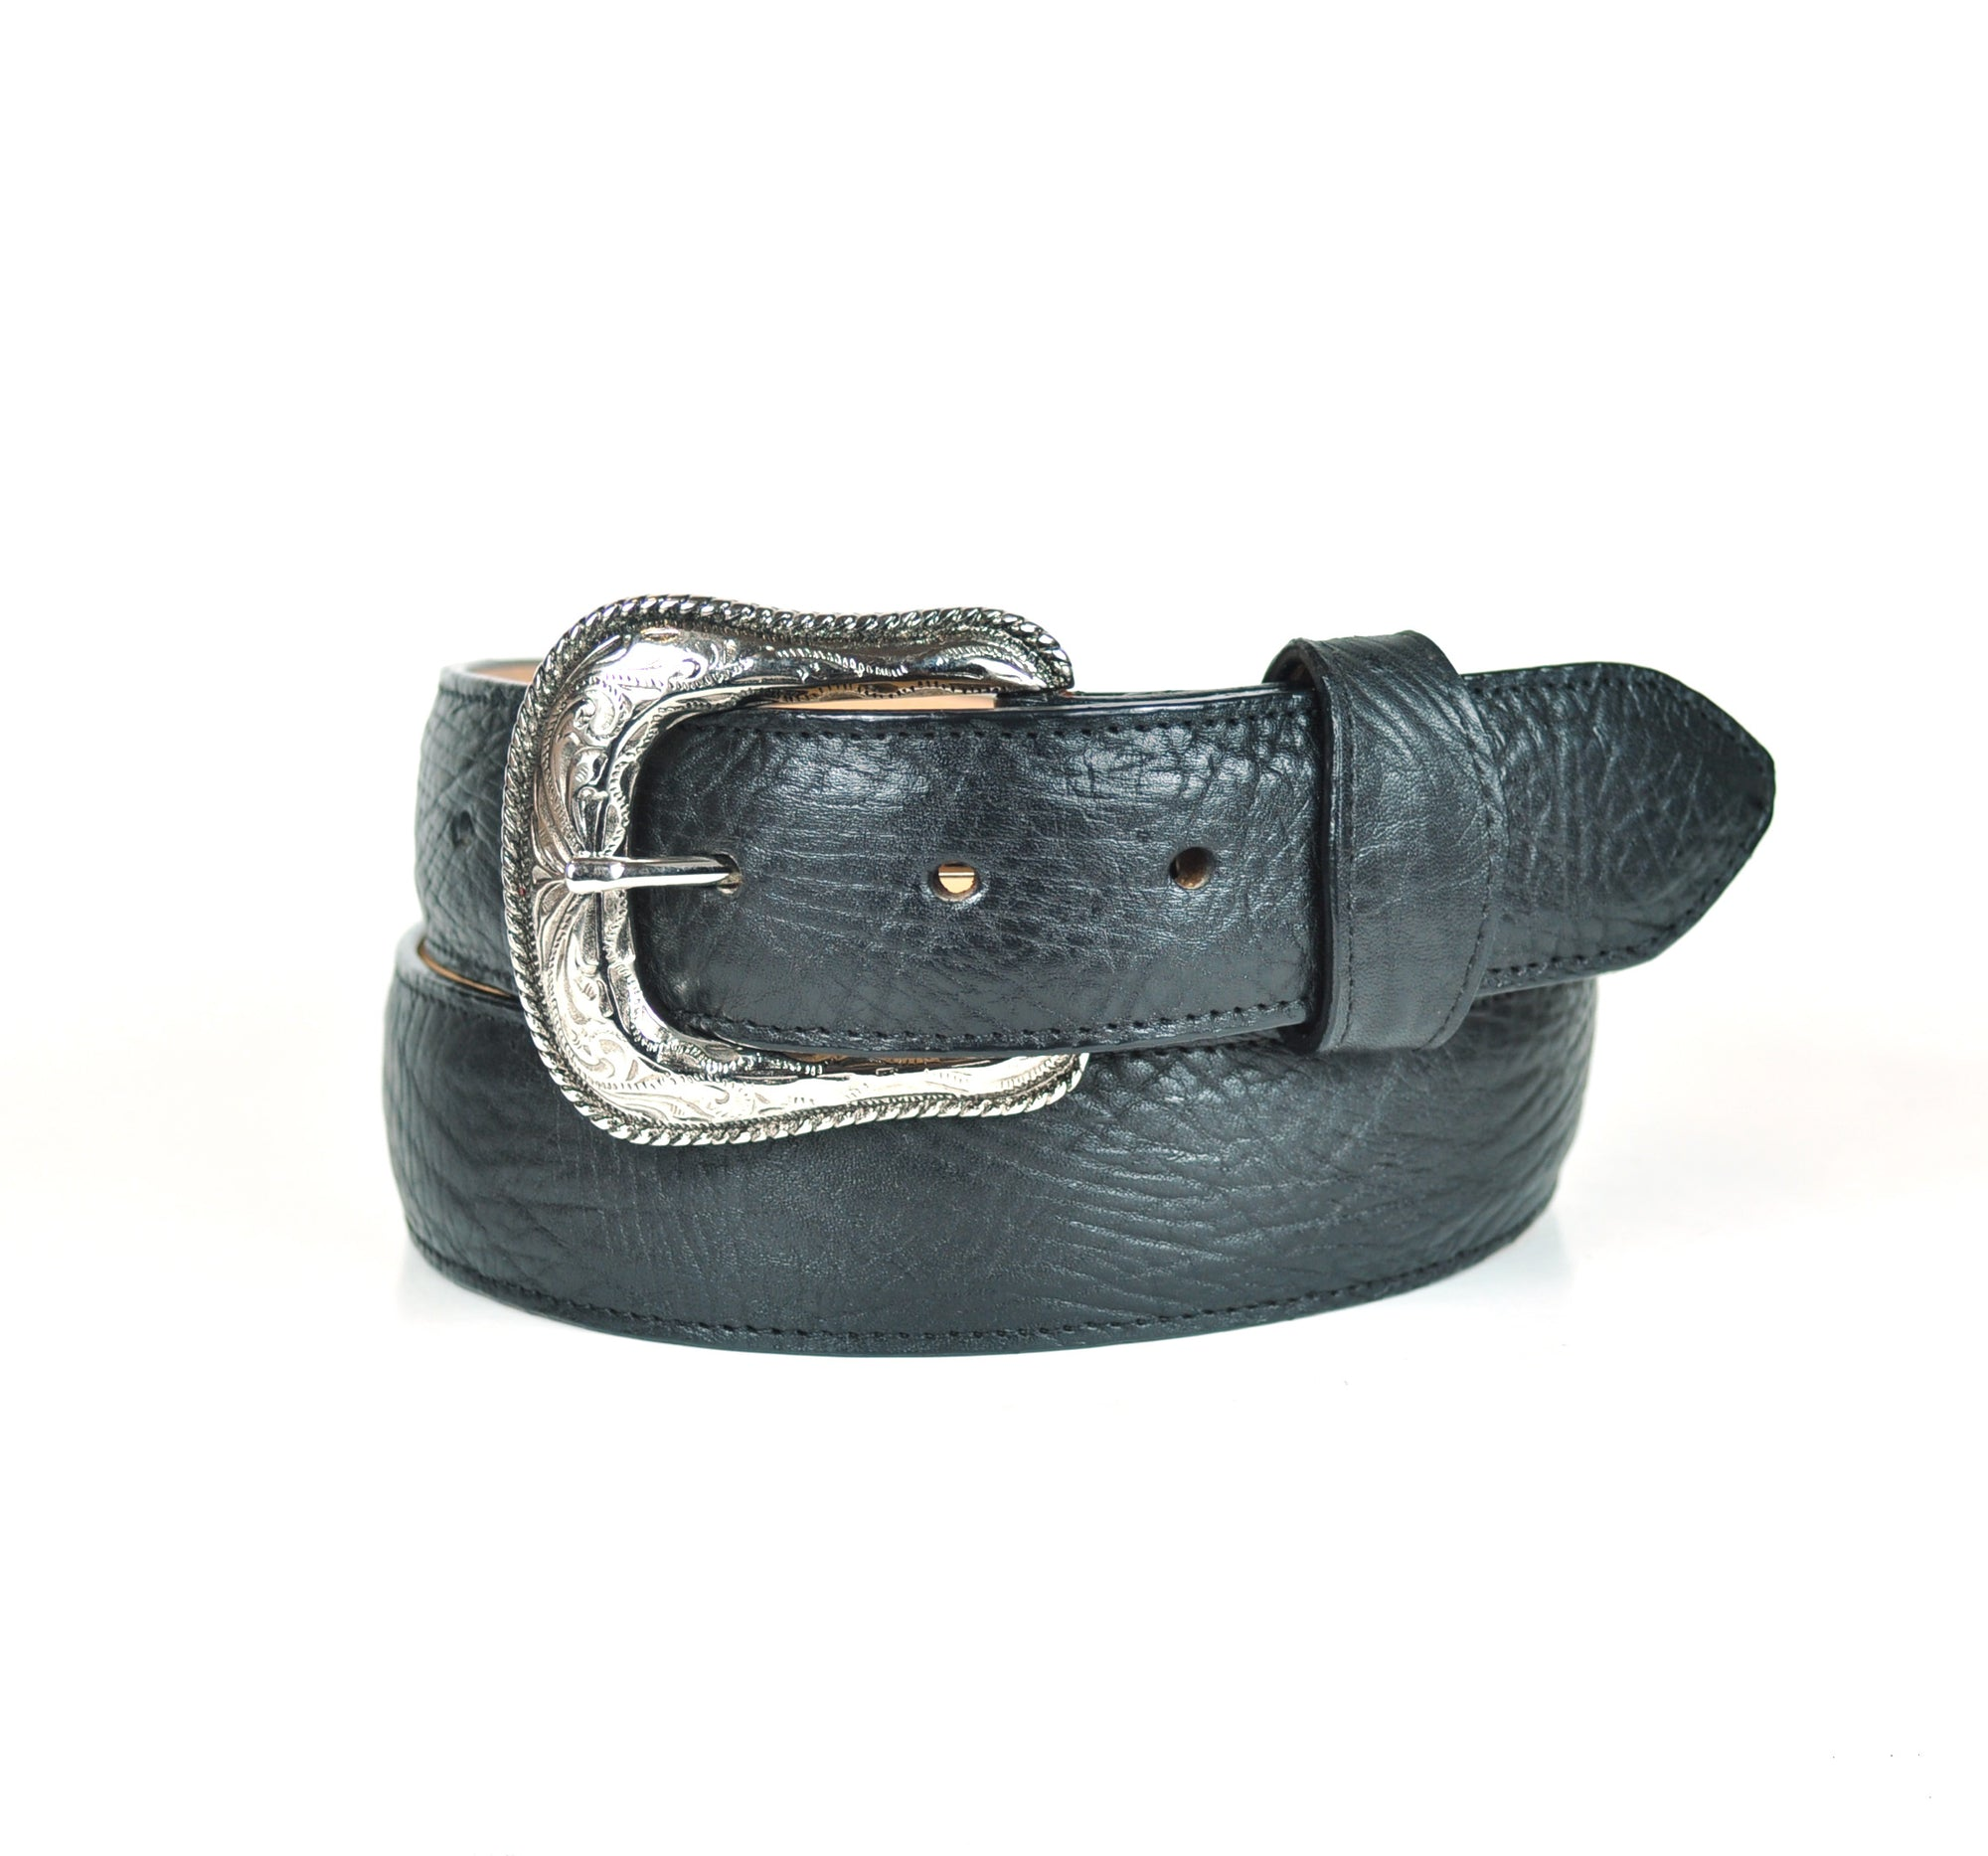 Gavel Men's Bullhide Western Belt - Black